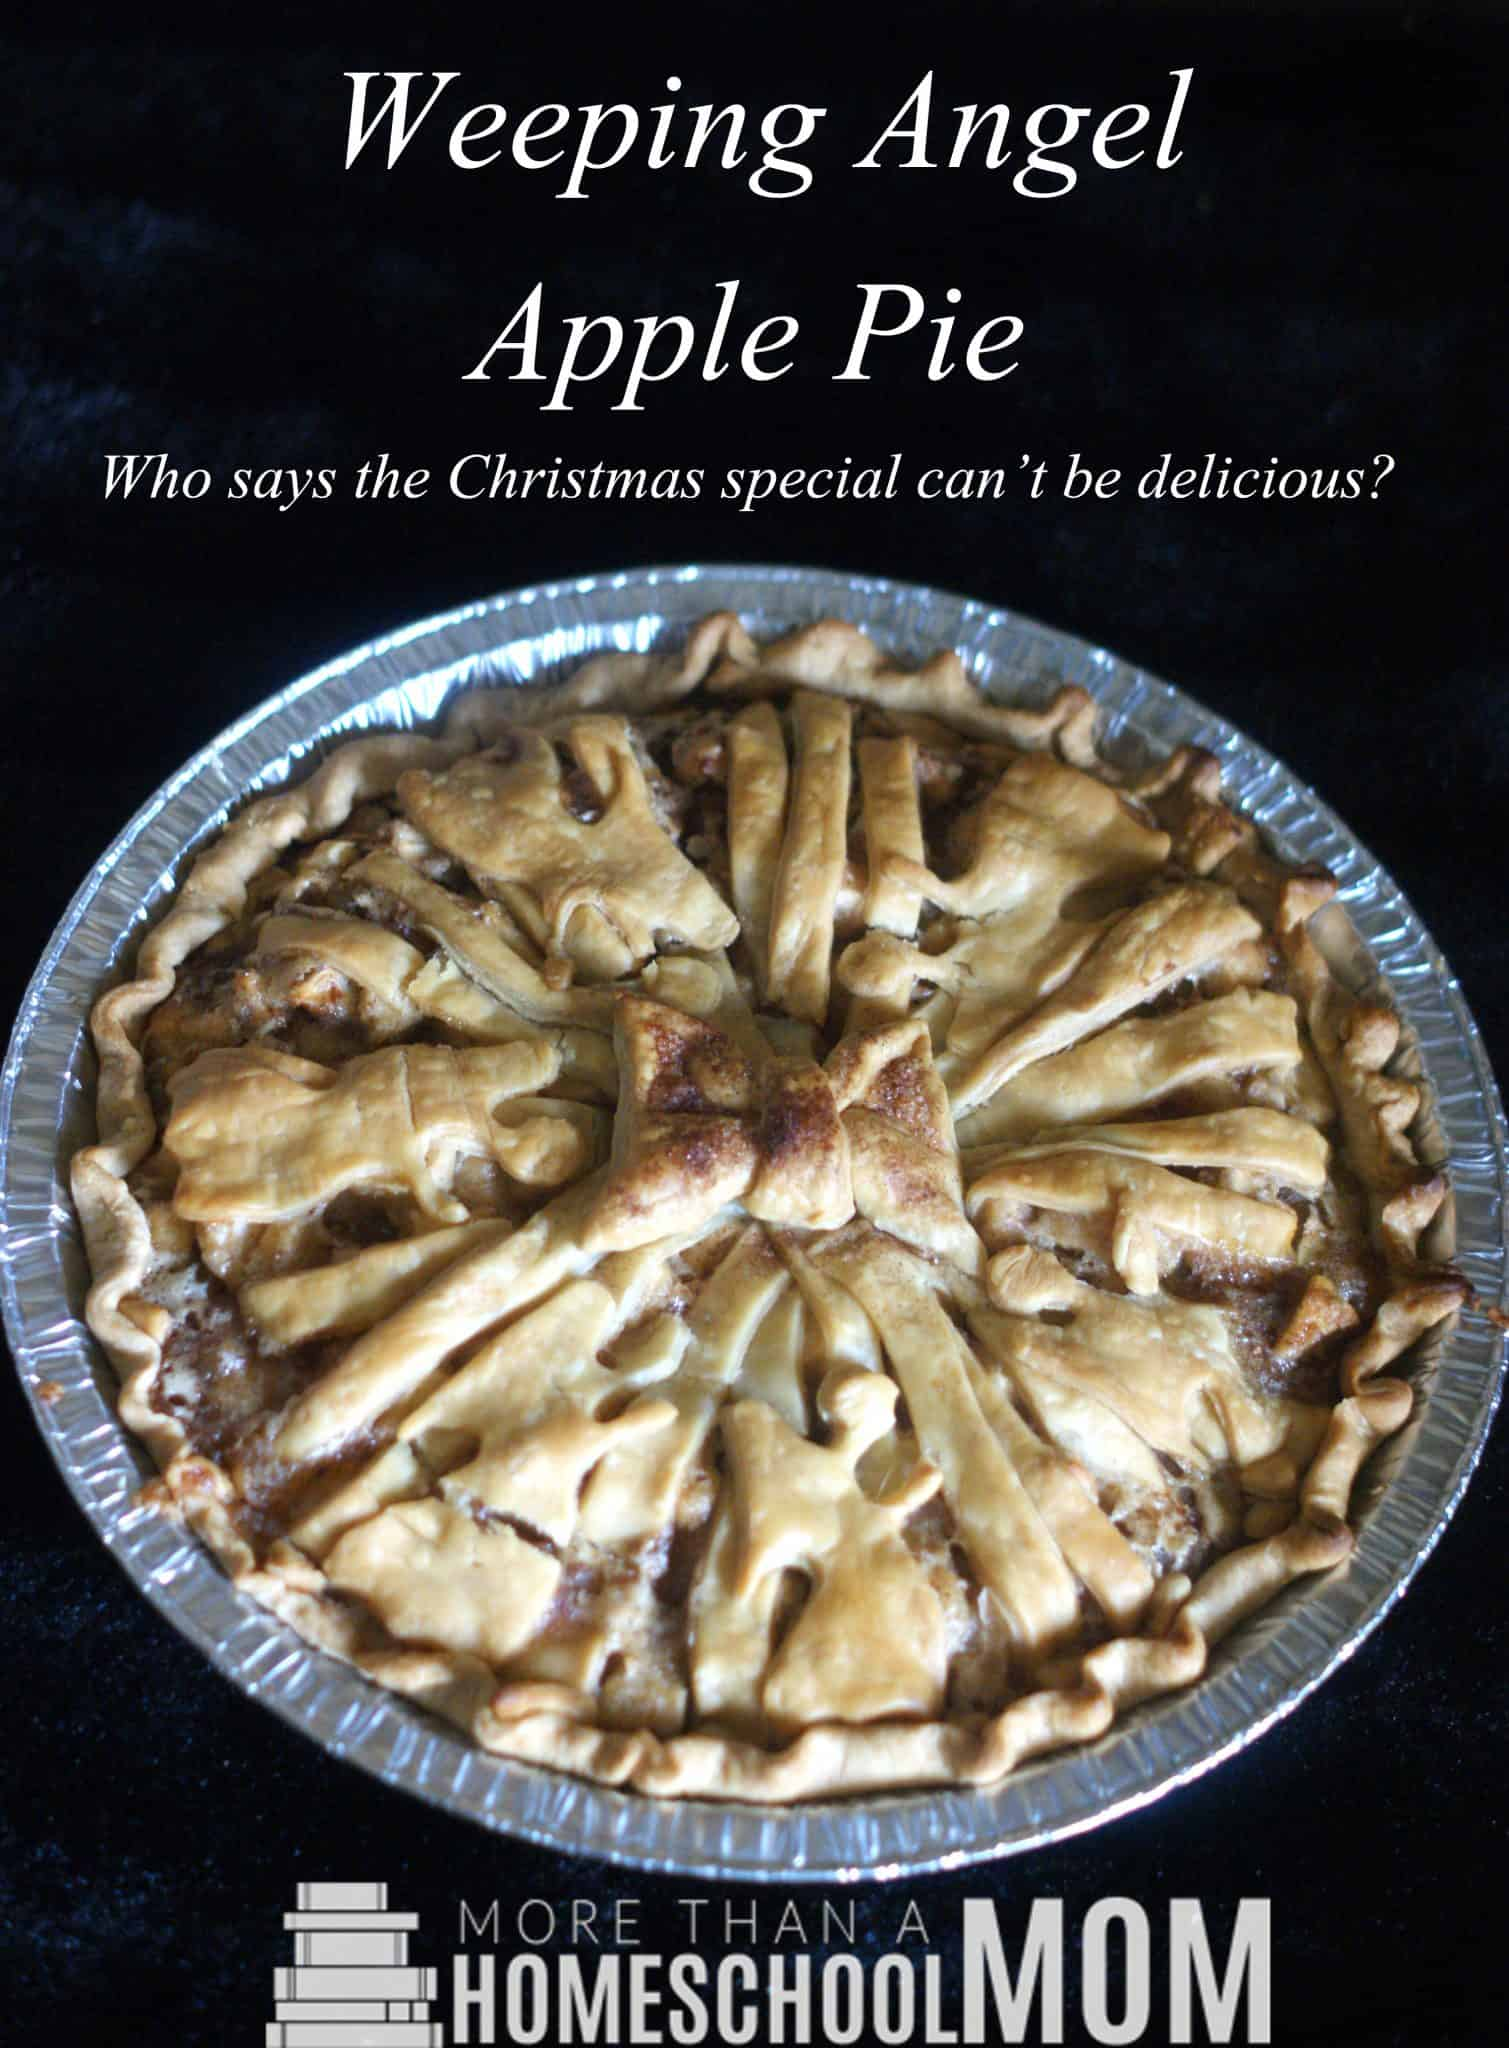 Weeping Angel Apple Pie - Easy Apple Pie Recipe - Easy home made apple pie recipe with a Doctor Who apple pie with weeping angels.